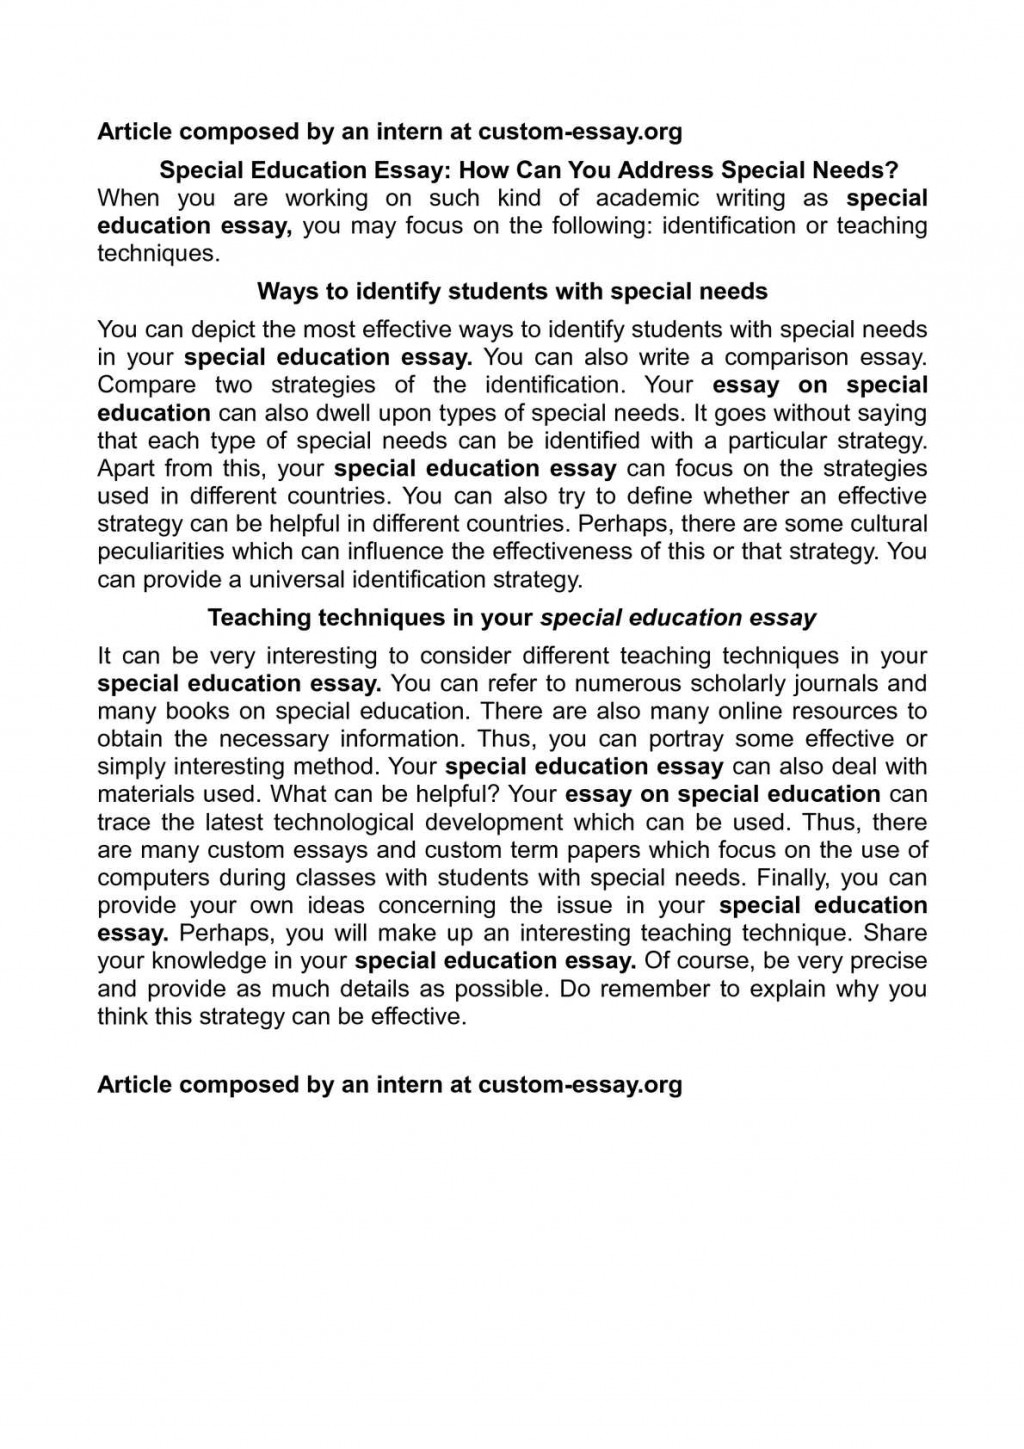 017 Interesting Research Paper Topics About Education Special Reform Essay Teacher Interview Examples Exceptional Elementary Ideas Early Childhood Large